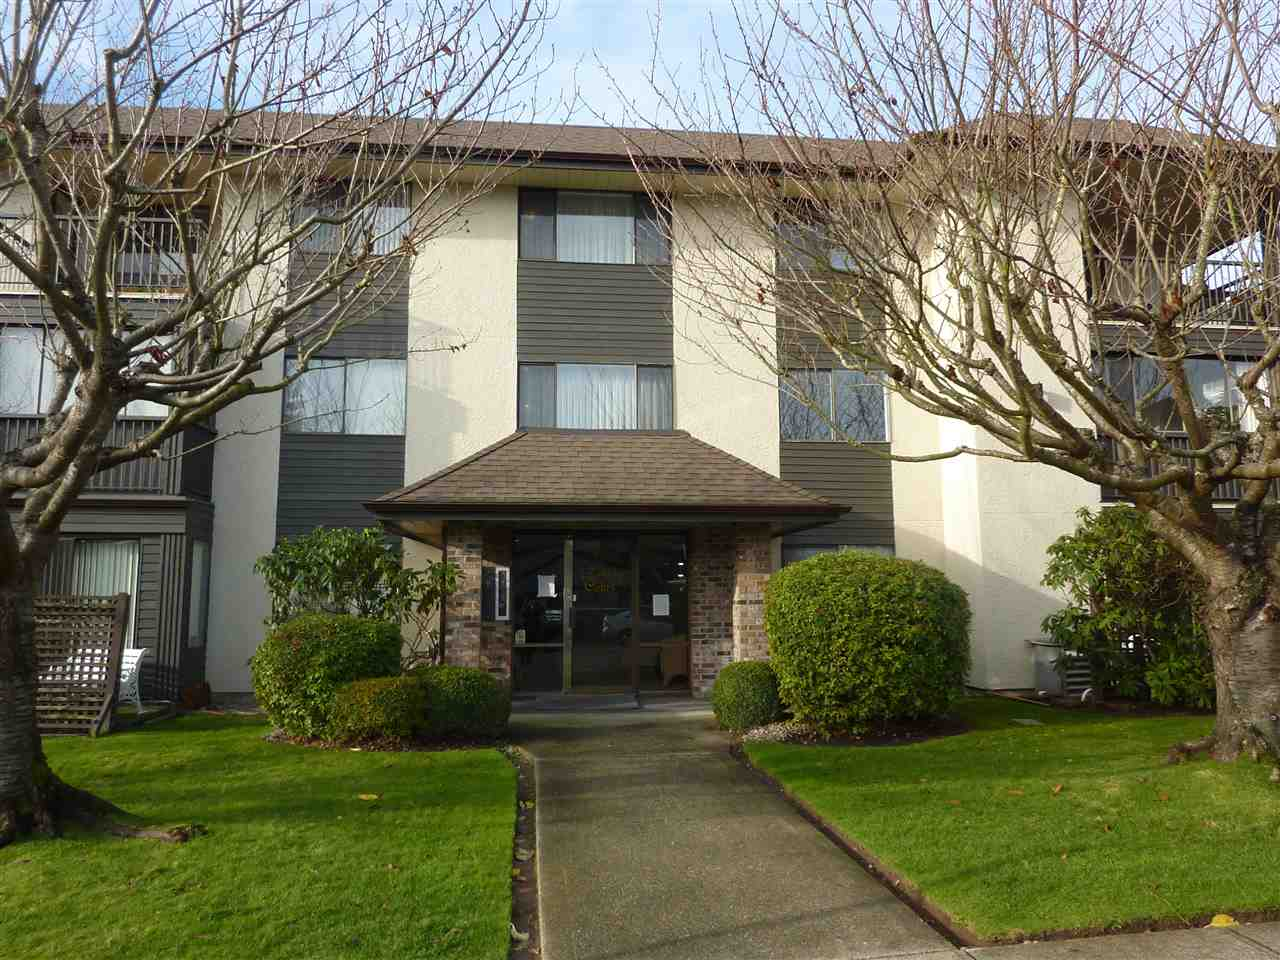 Bright & Sunny southeast facing corner Unit! At 1120sf, this large 2bd/2bath unit is perfect for the downsizer. Updates include new kitchen, appliances, paint, blinds, closet doors & lighting throughout. Large living spaces for entertaining and the dining room has plenty of room for your table and hutch. You are welcomed into a spacious foyer and the solarium opens up for extra sitting space, a great place to have a good read. The bedrooms are at opposite ends of the unit. Storage locker off solarium (not included in sq ft) plus more storage in bsmt along with a shared workshop for the hobbyist. Steps to shopping, beach, hospital. 55+ no pets.  Open House  Jan 20 1-3pm